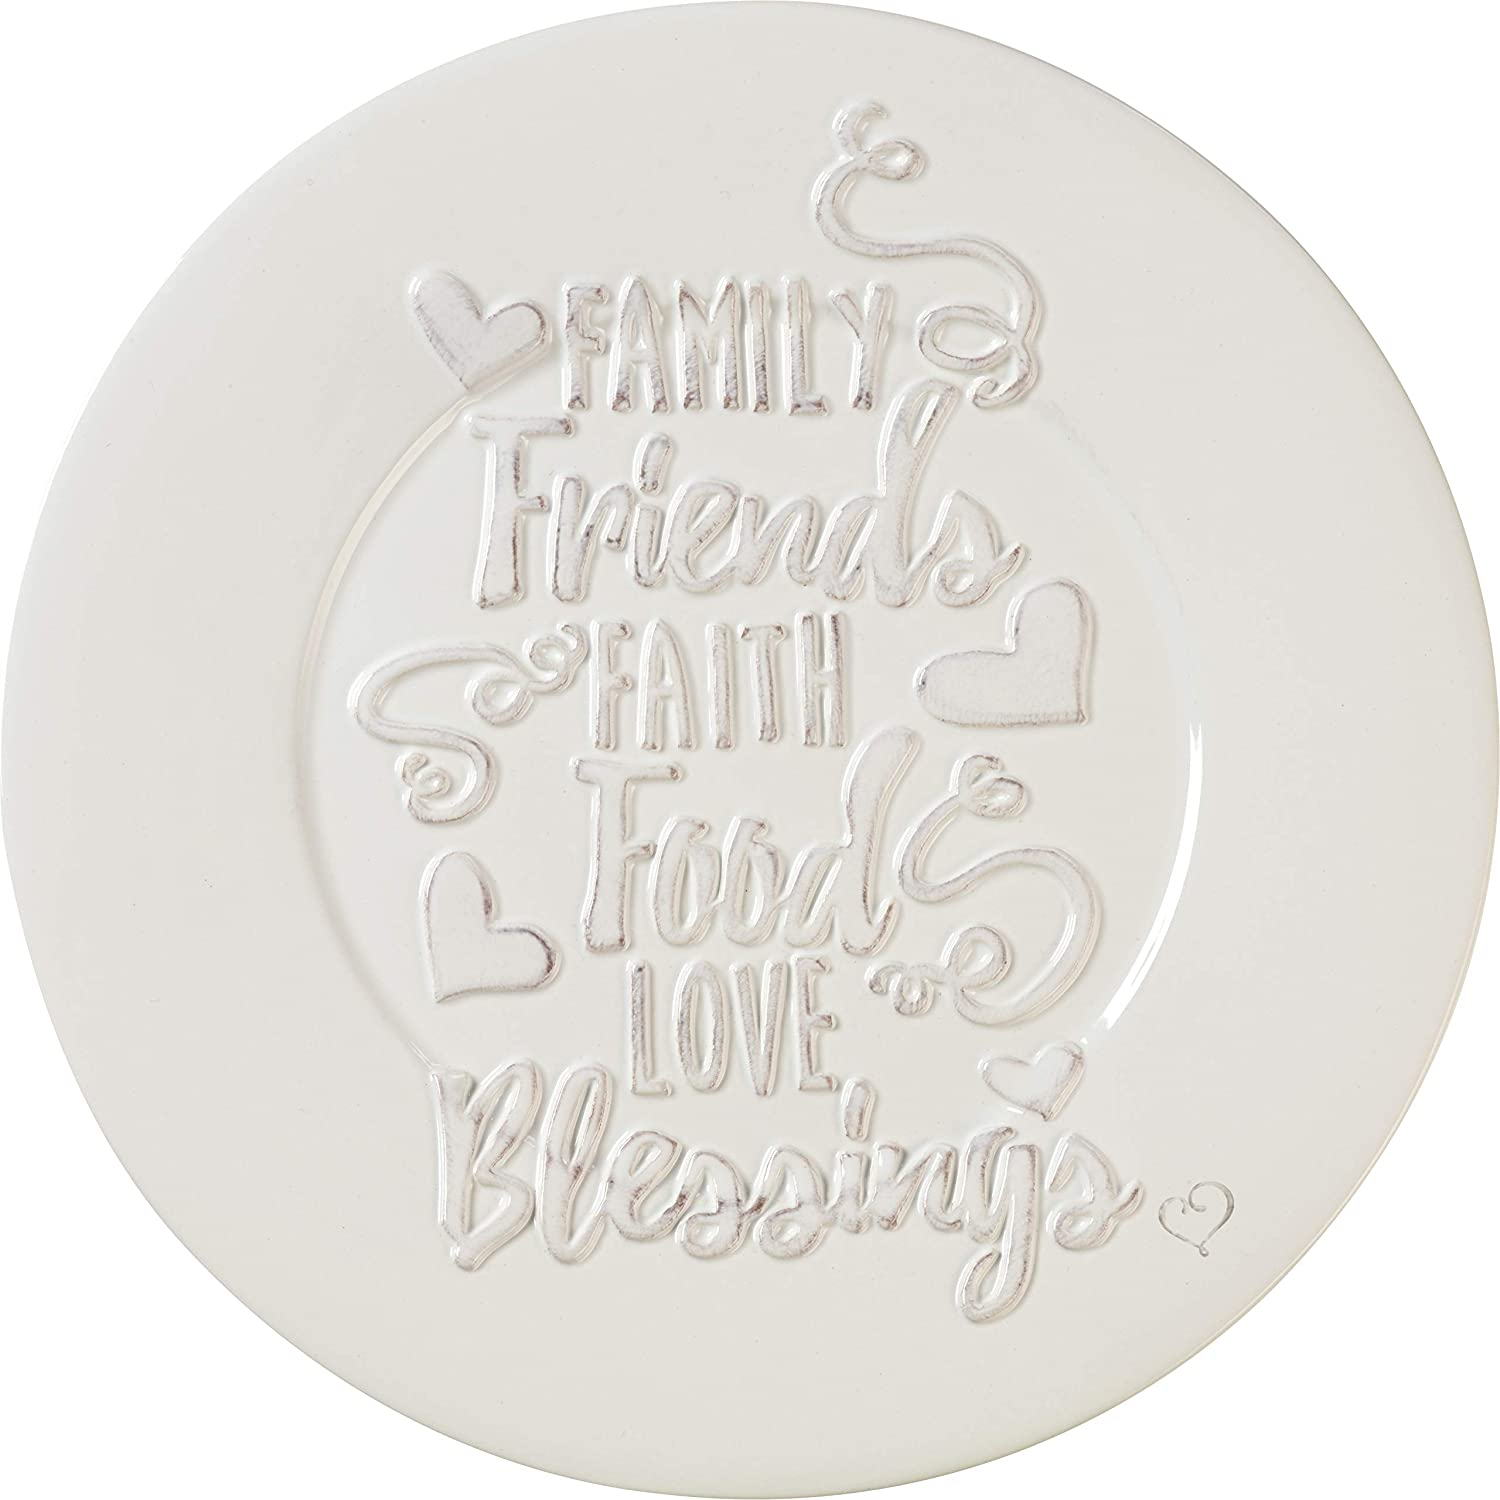 Precious Moments Bountiful Blessings Family Friends Faith Food Love Blessings Ceramic Round Serving Plate 10 Inch